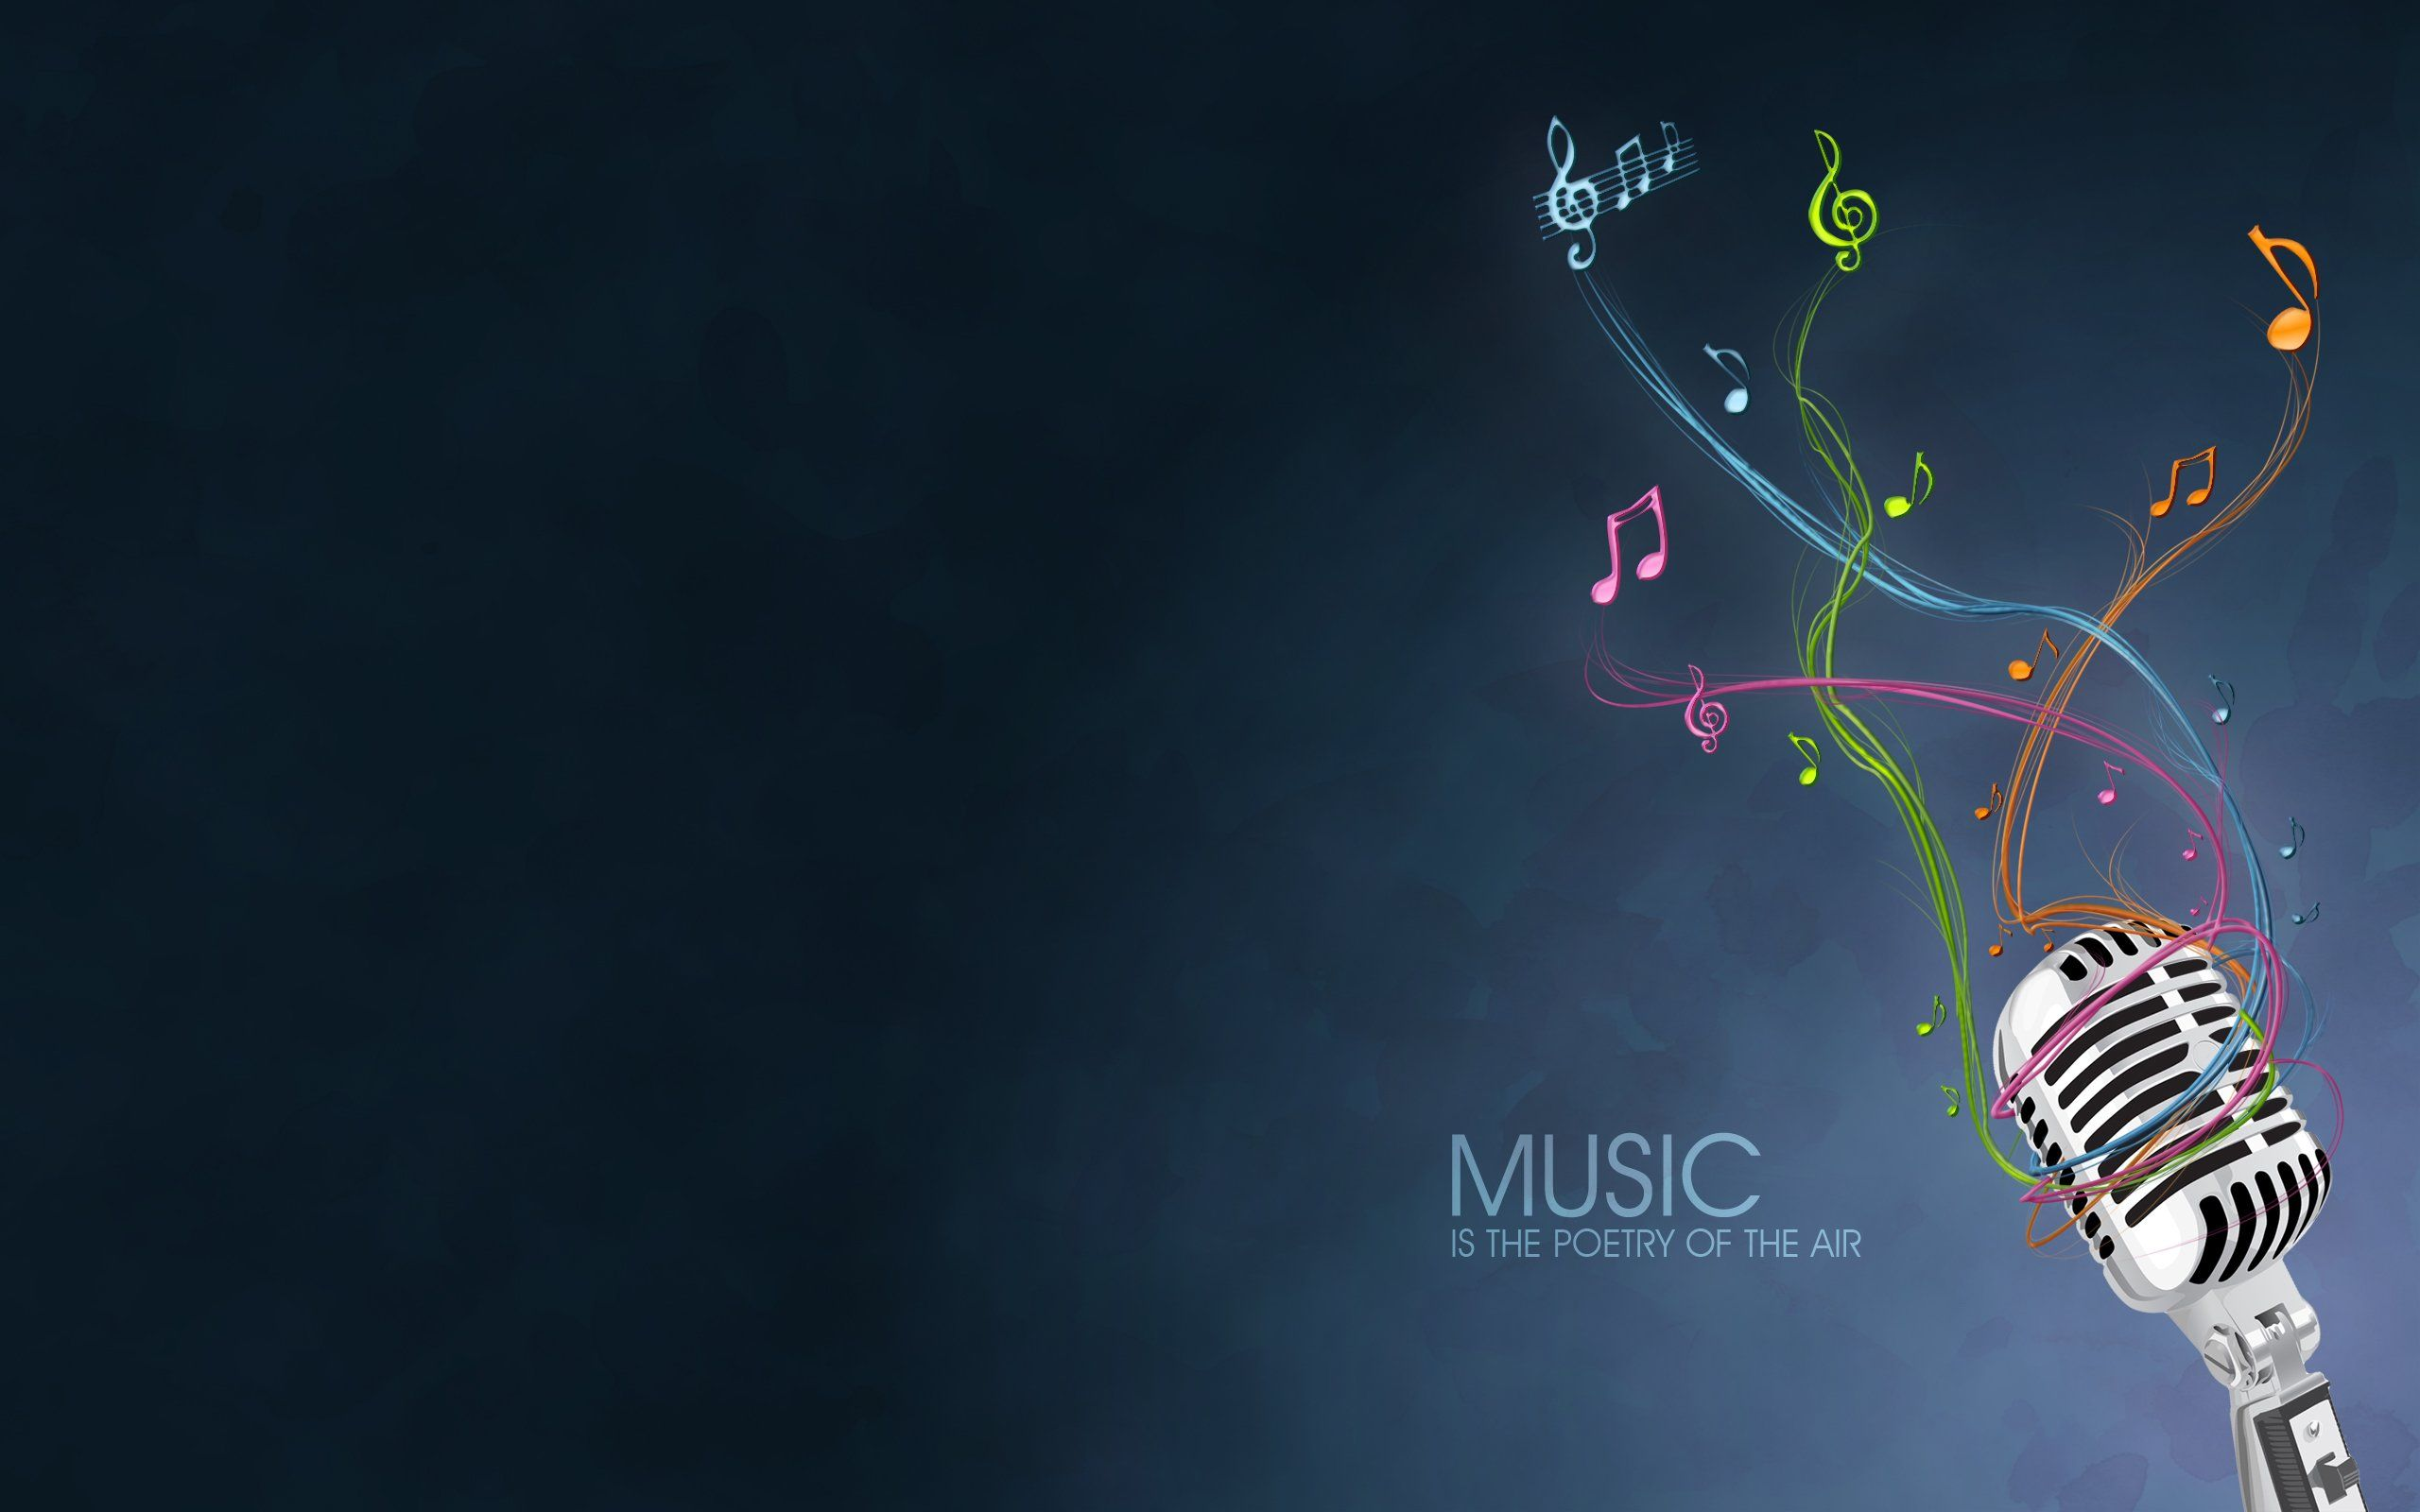 Free Music Background Images Music Wallpaper Music Backgrounds Music Notes Background